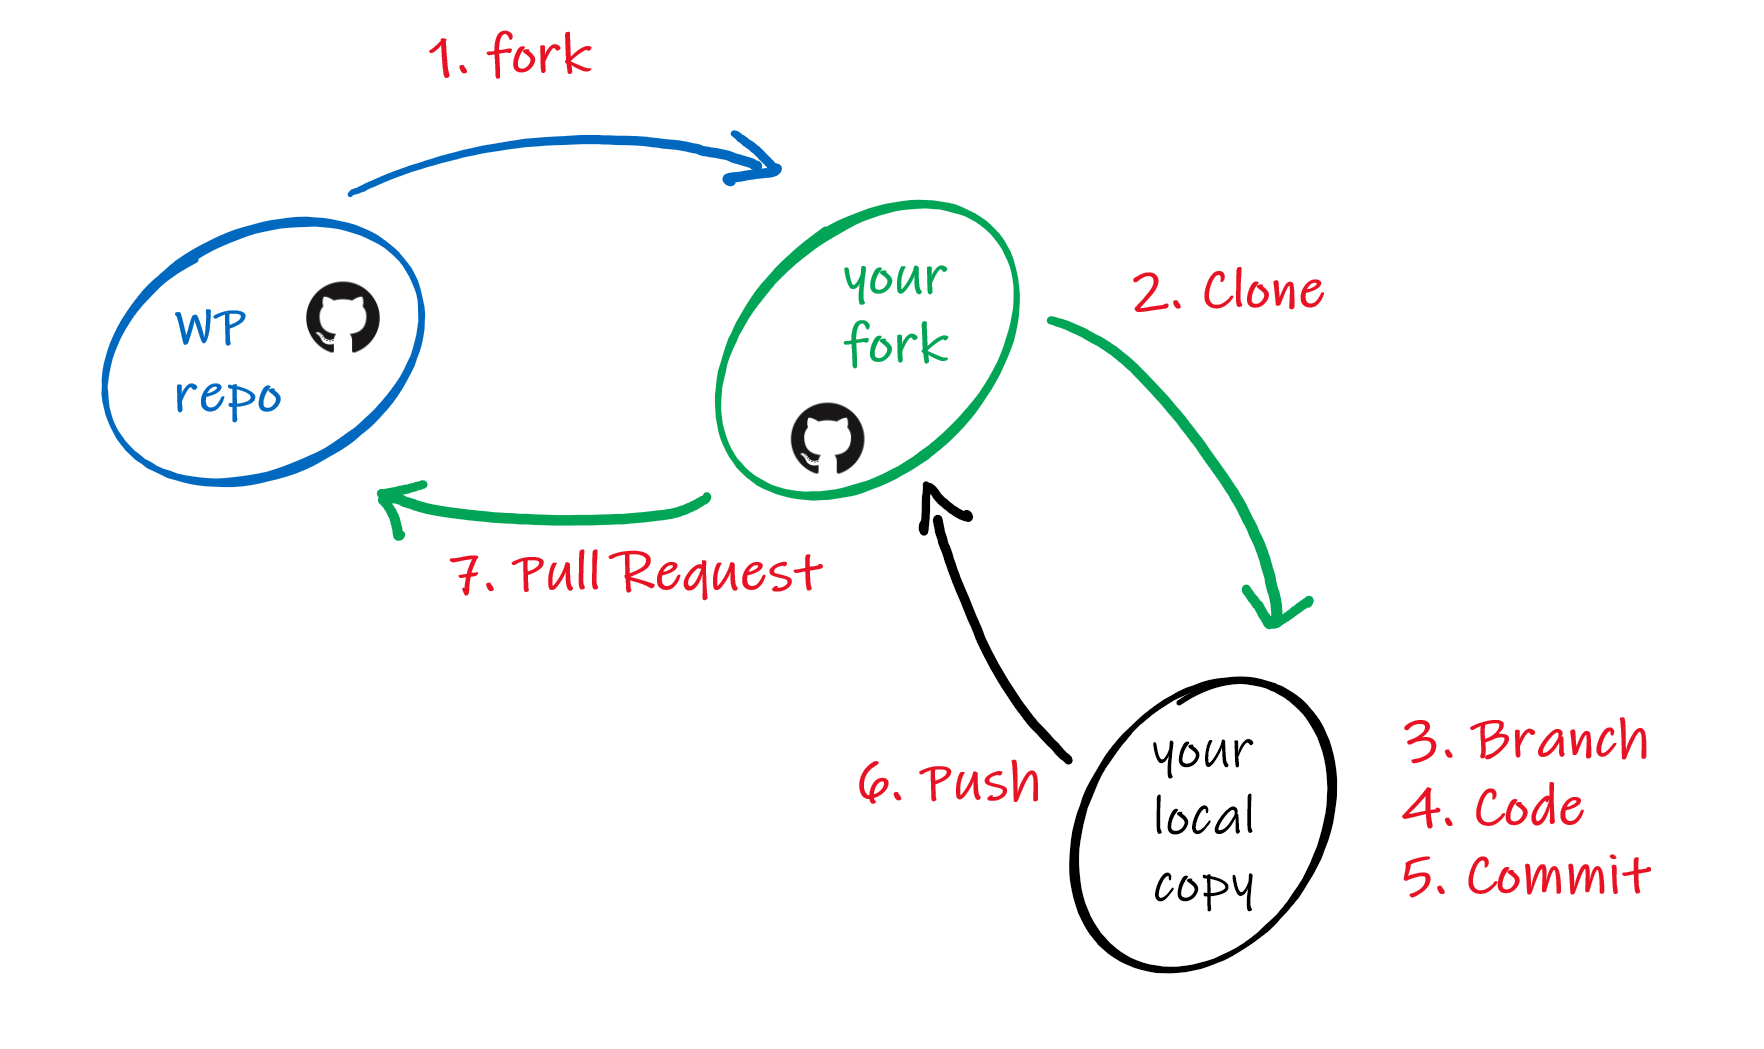 Visual Overview of Git Workflow